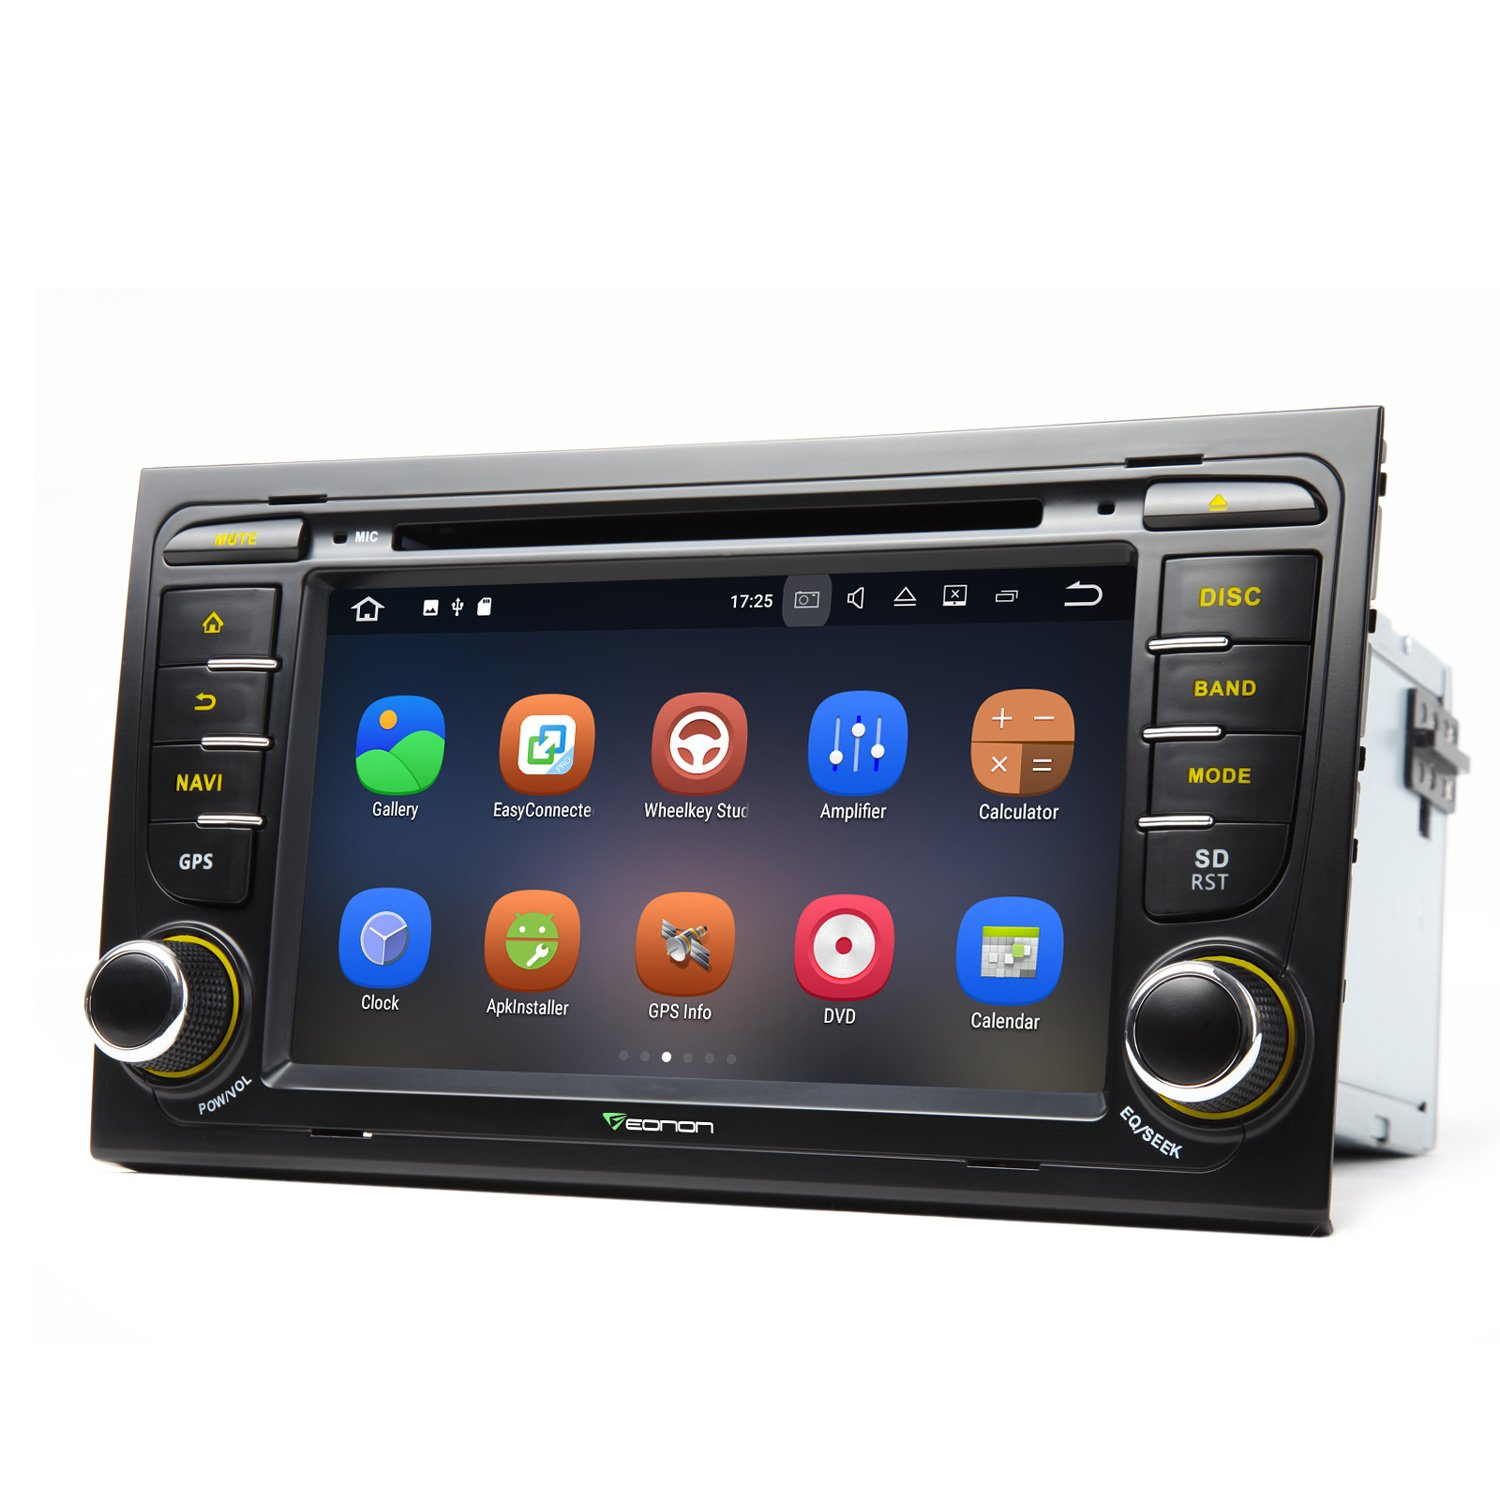 Amazon.com: Eonon Car Audio Stereo Radio for Audi A4/S4/RS4 and Seat Exeo  Android 7.1 2GB RAM Quad- Core 7 Inch HD Digital Touch Screen Car GPS  Navigation ...